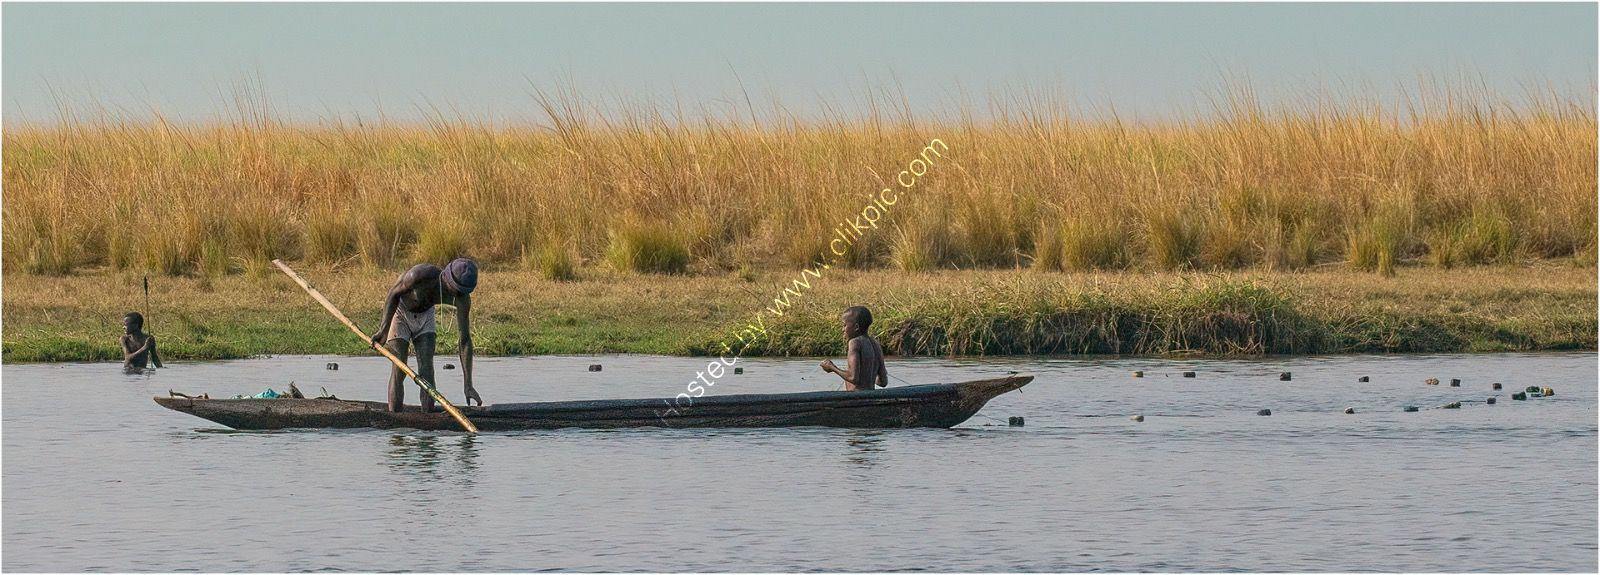 H/C Mick Parmenter-Fishing in the croc infested Chobe river